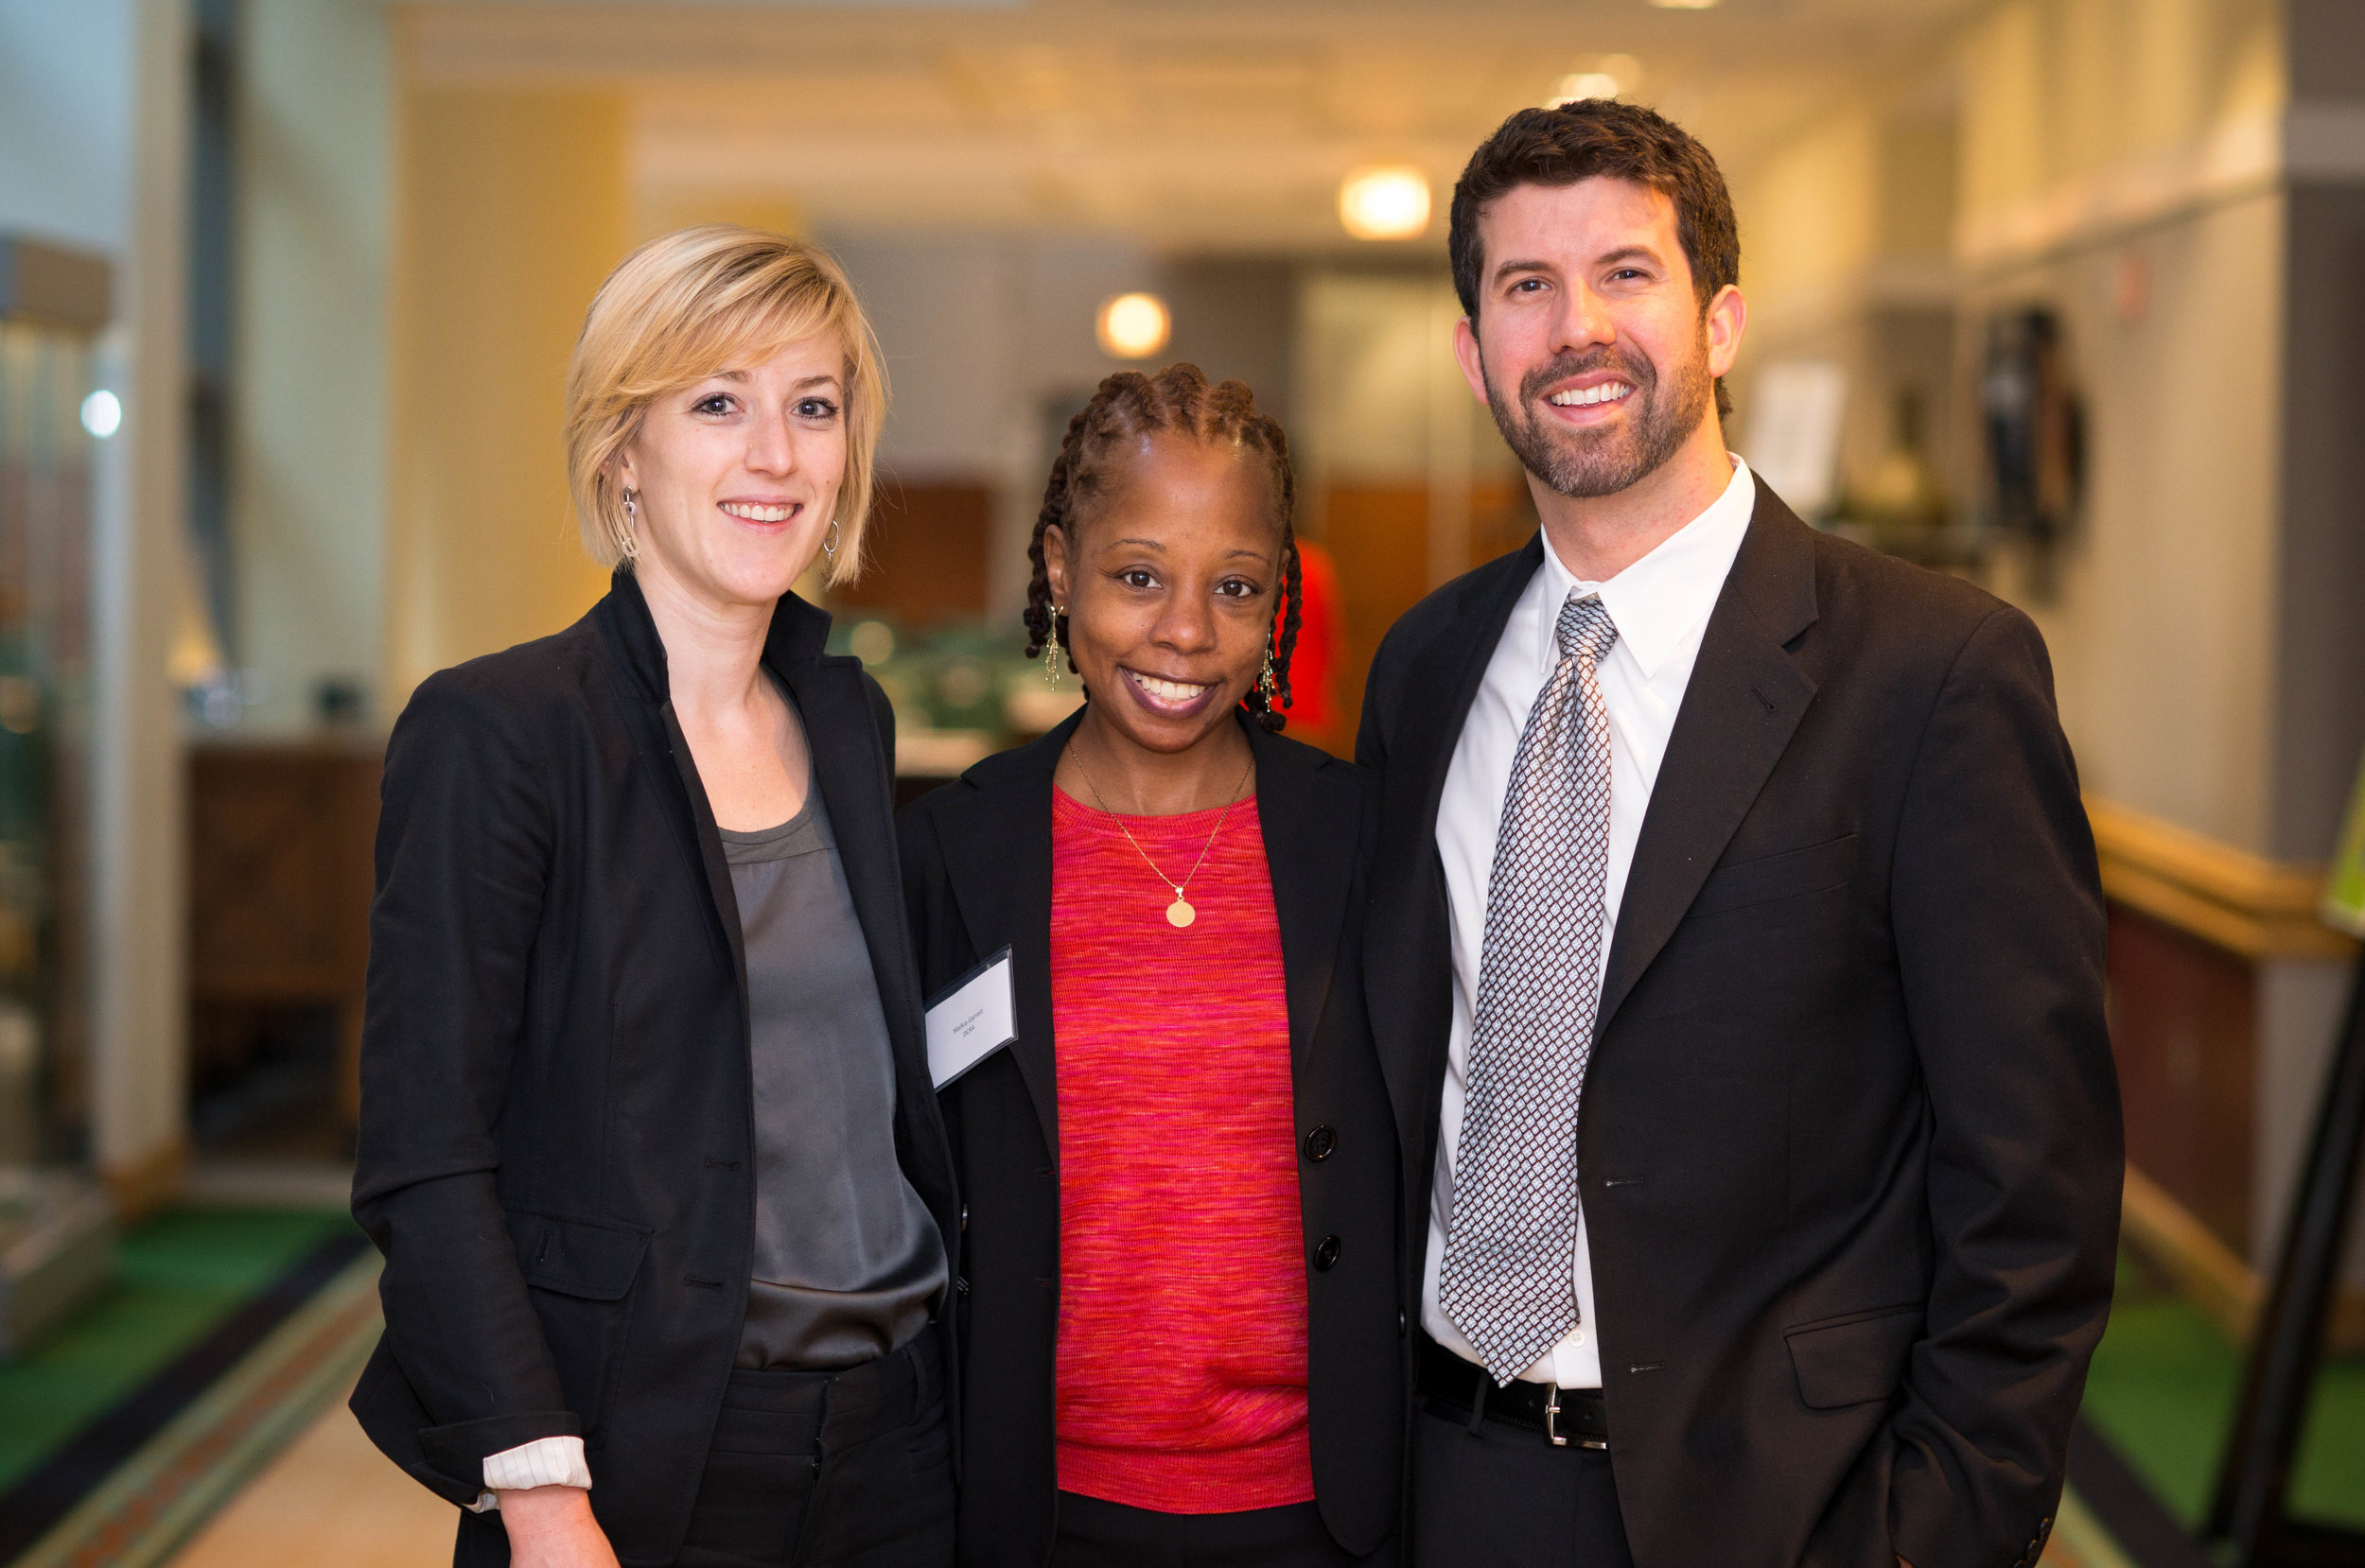 Green Building Division 2013 (from left to right): Kimberly Newcomer, Malkia Garrett and Dave Epley.